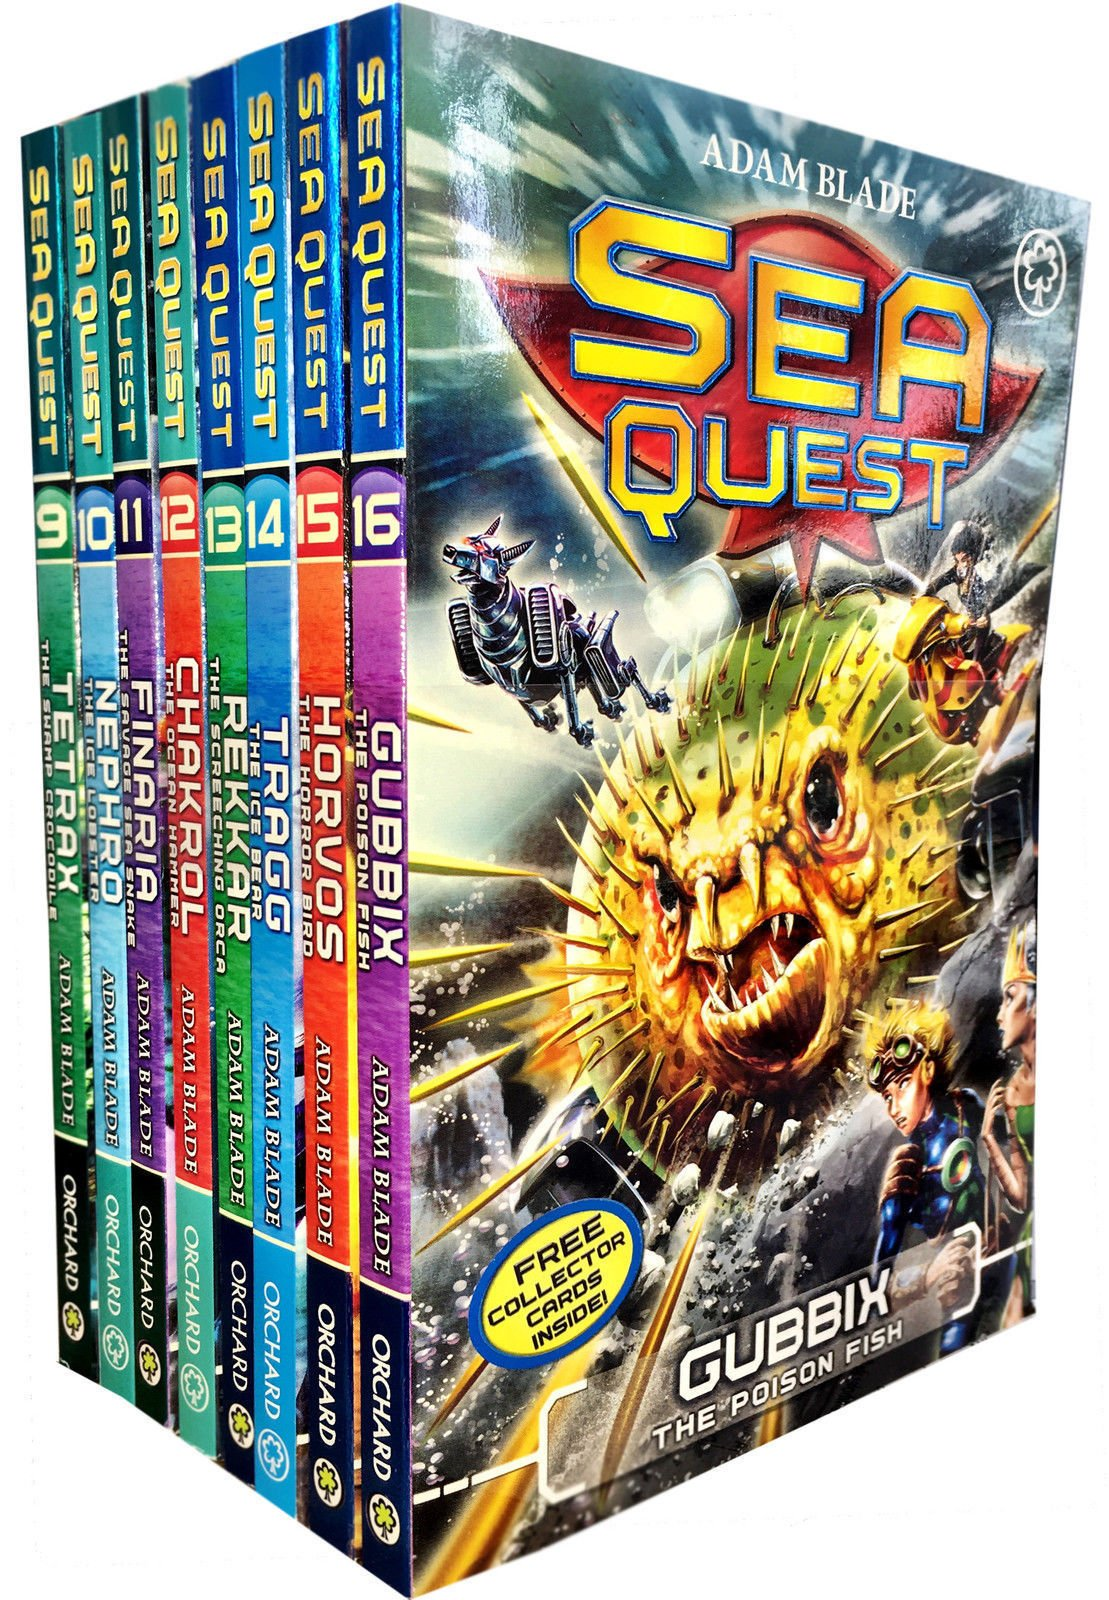 Download Sea Quest Series 3 and 4 Collection Adam Blade 8 Books Set (Tetrax, Nephro, Finaria the Savage, Chakrol, Rekkar the Screeching Orca, Tragg the Ice Bear, Horvos the Horror Bird, Gubbix the Poison Fish) pdf epub